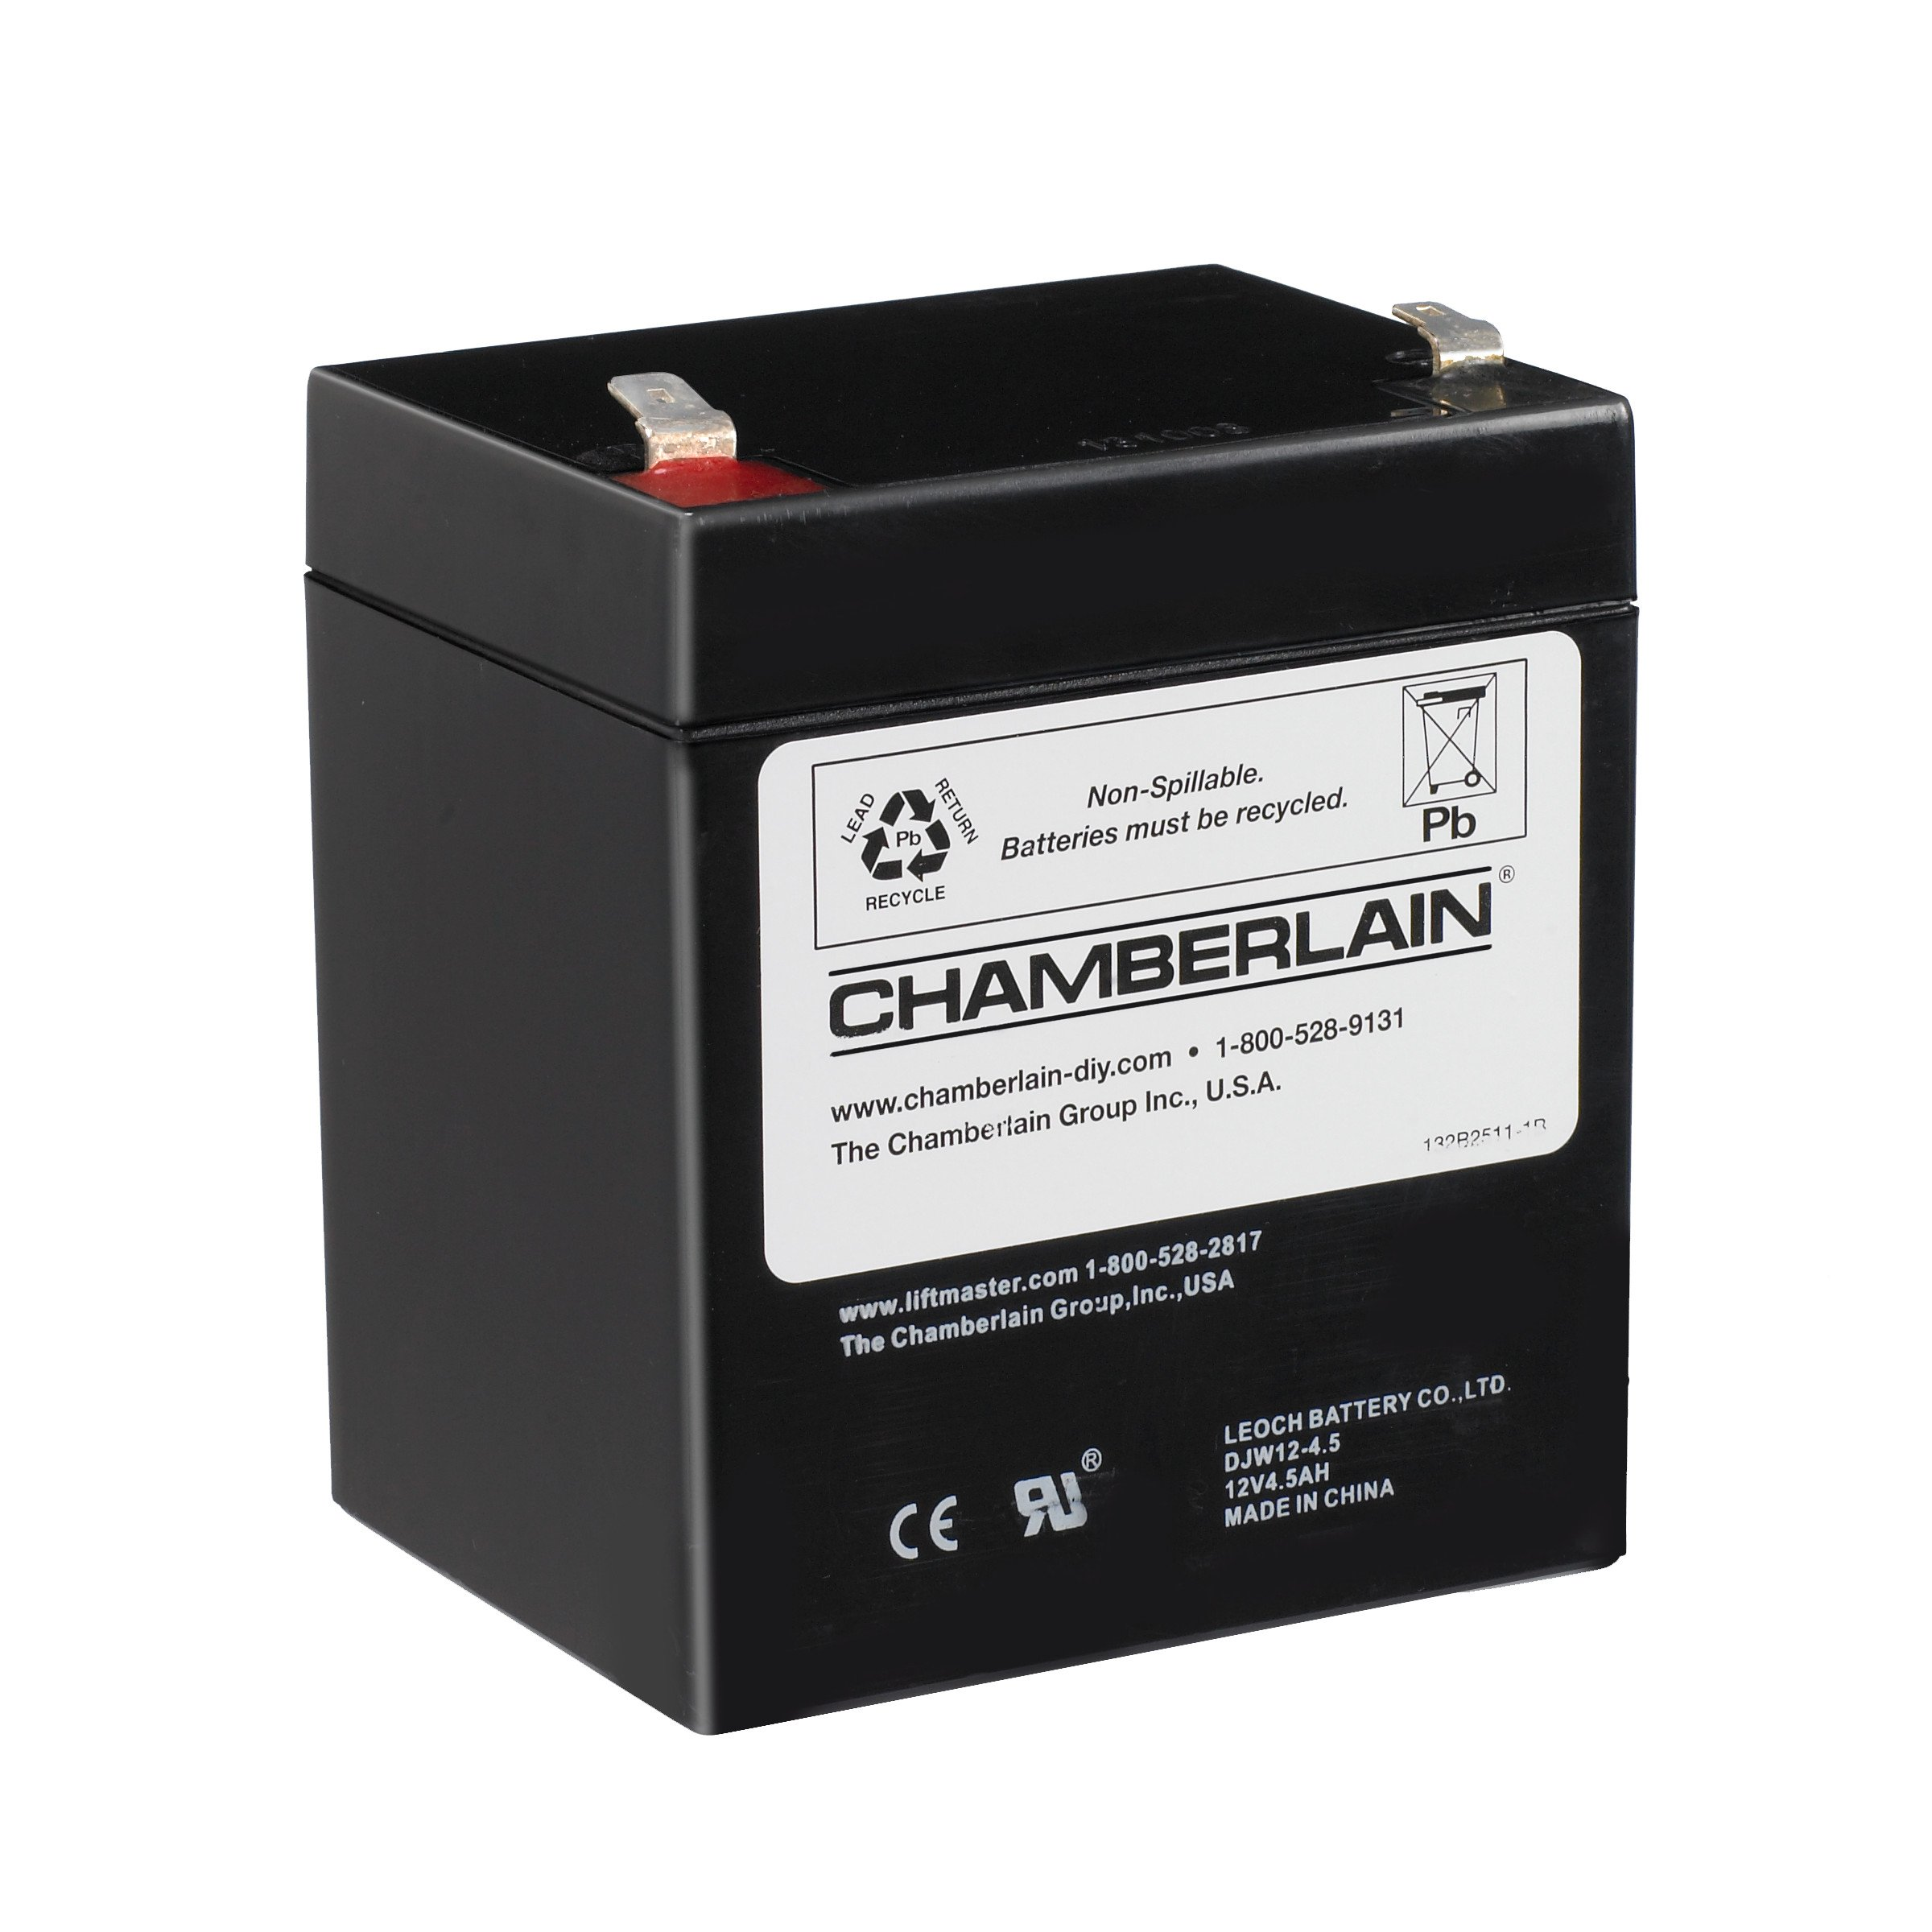 Chamberlain/LiftMaster/Craftsman 4228 Replacement Battery for Battery Backup Equipped Garage Door Openers